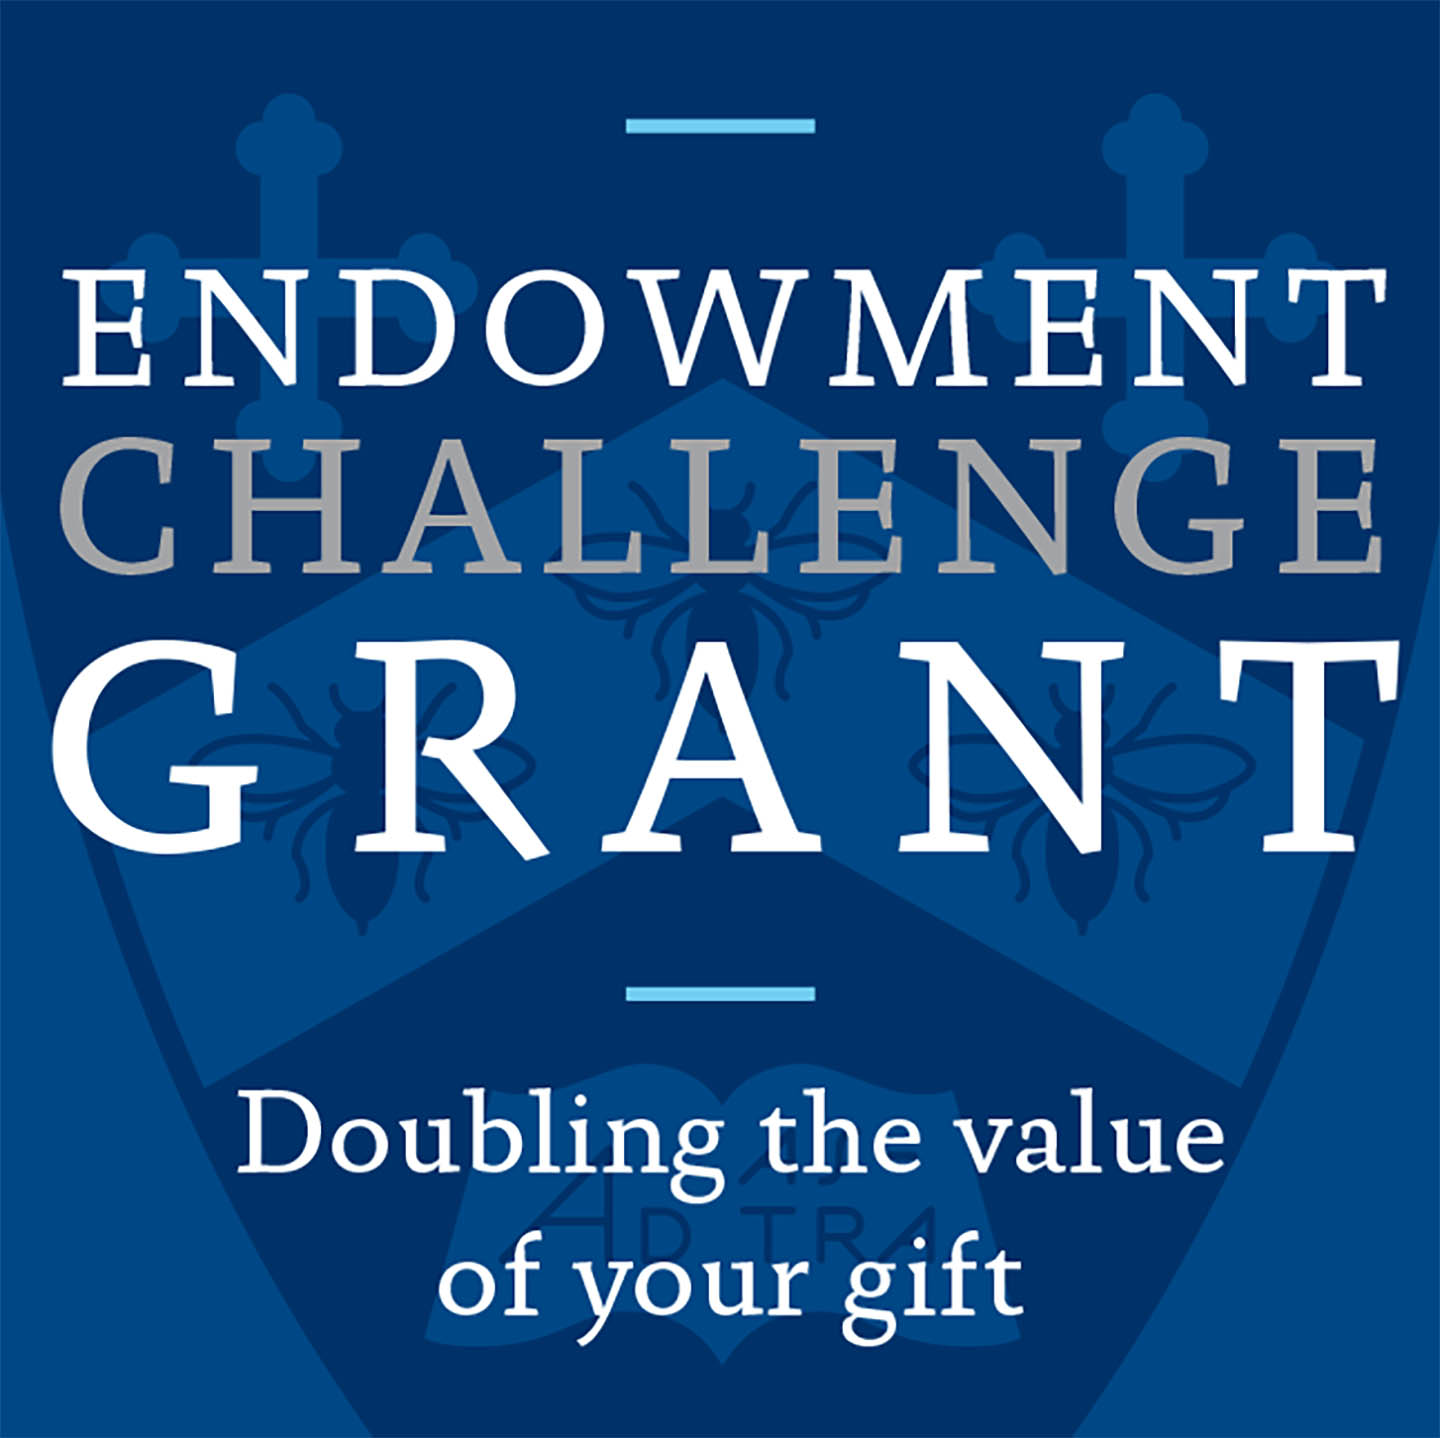 Endowment Challenge Grant doubles the value of your gift